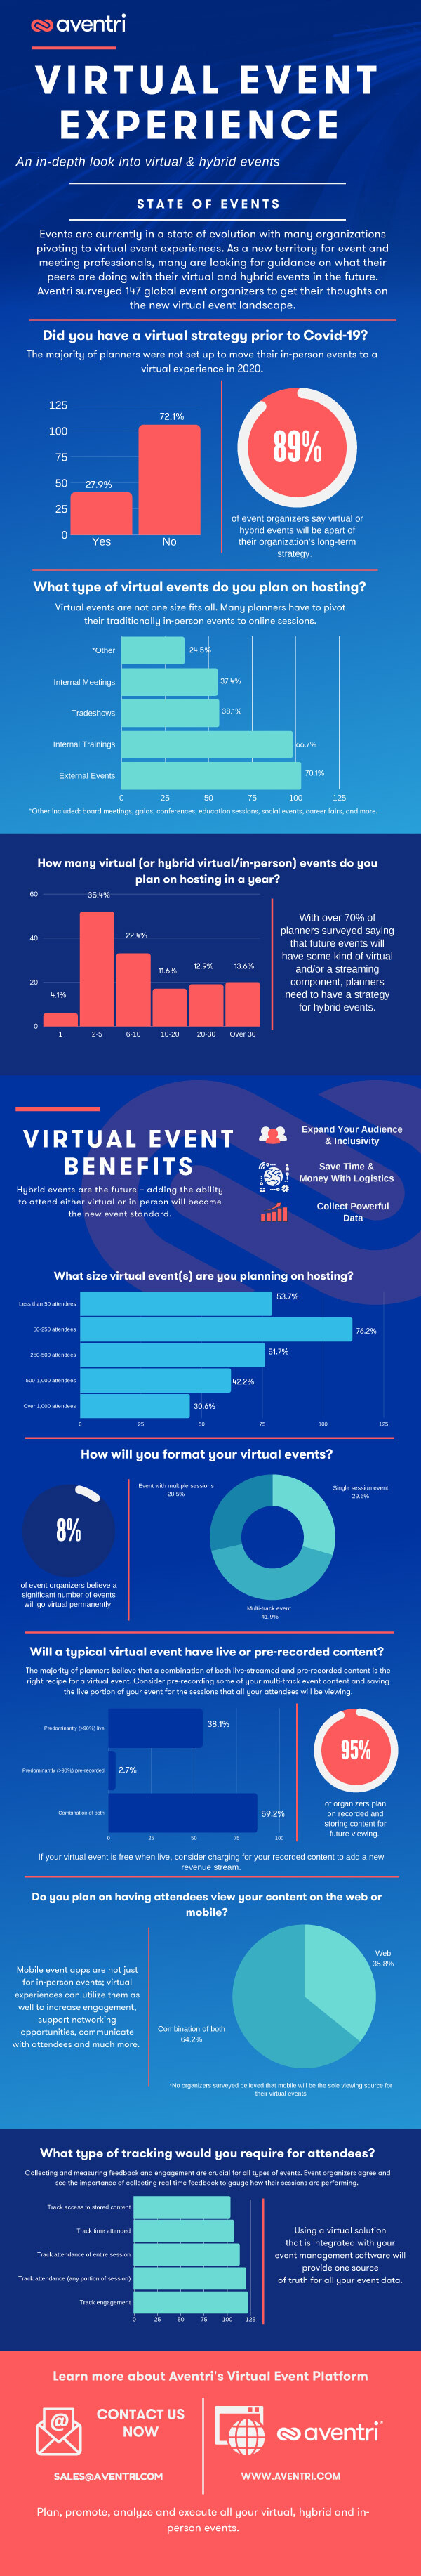 Virtual event experience infographic: An in-depth look into virtual and hybrid events